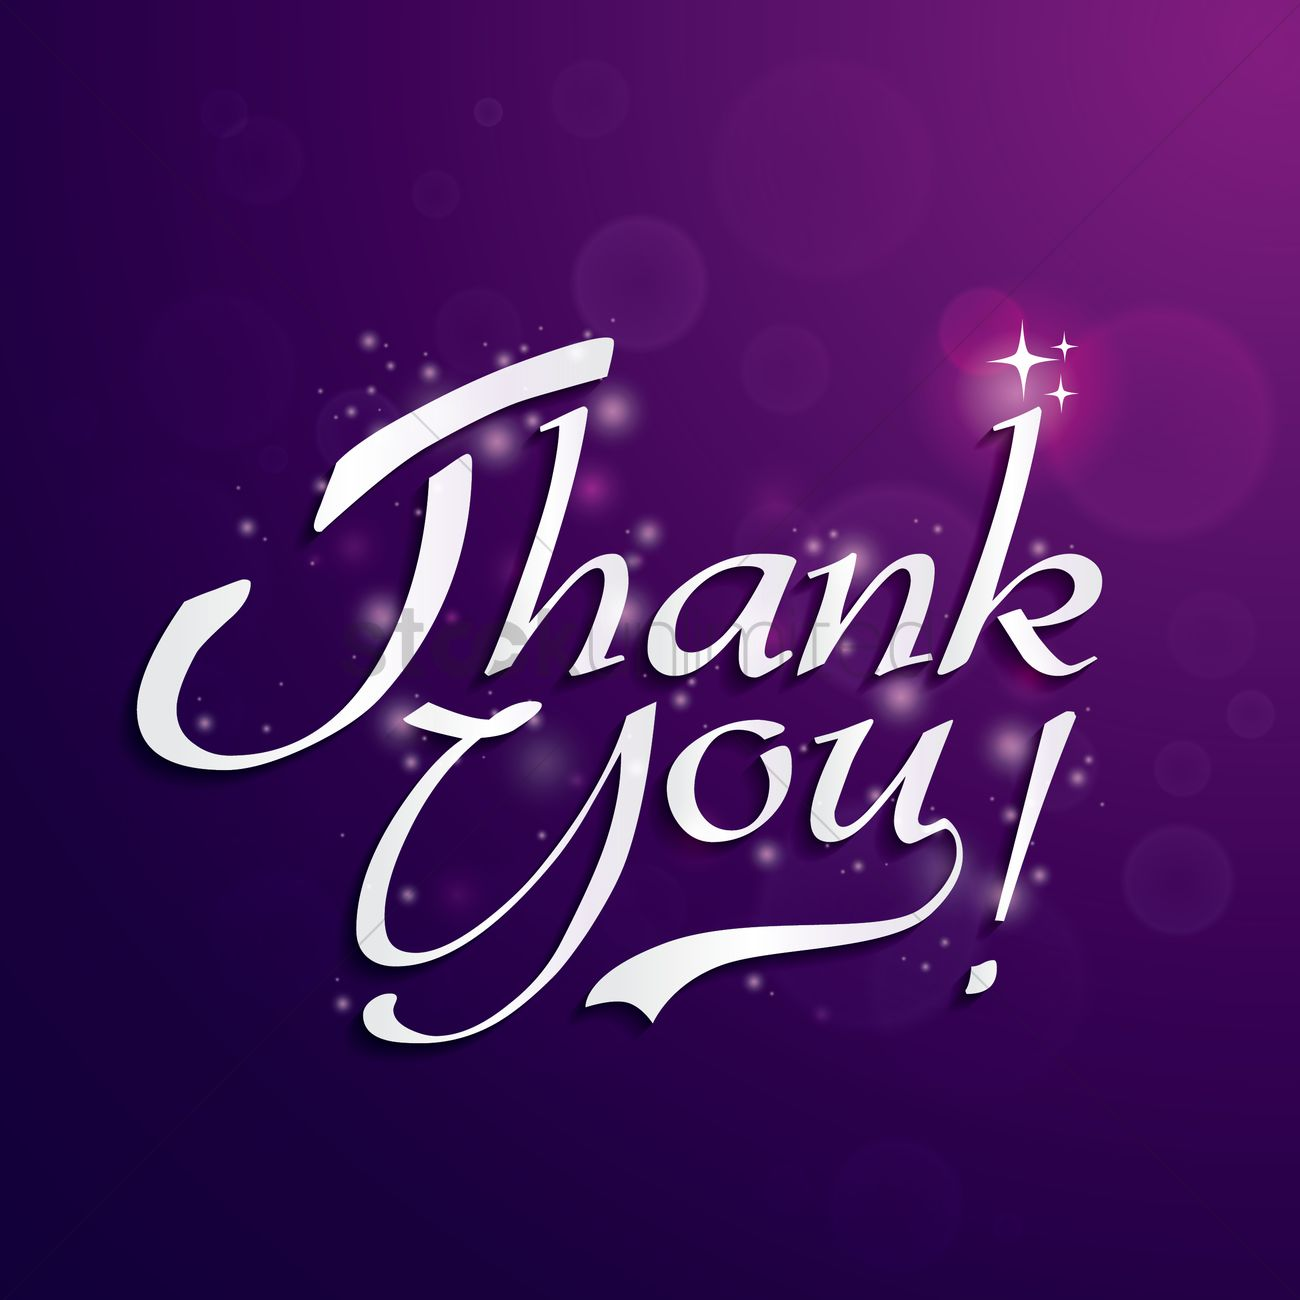 Thank you greeting vector image 1610028 stockunlimited thank you greeting vector graphic m4hsunfo Images